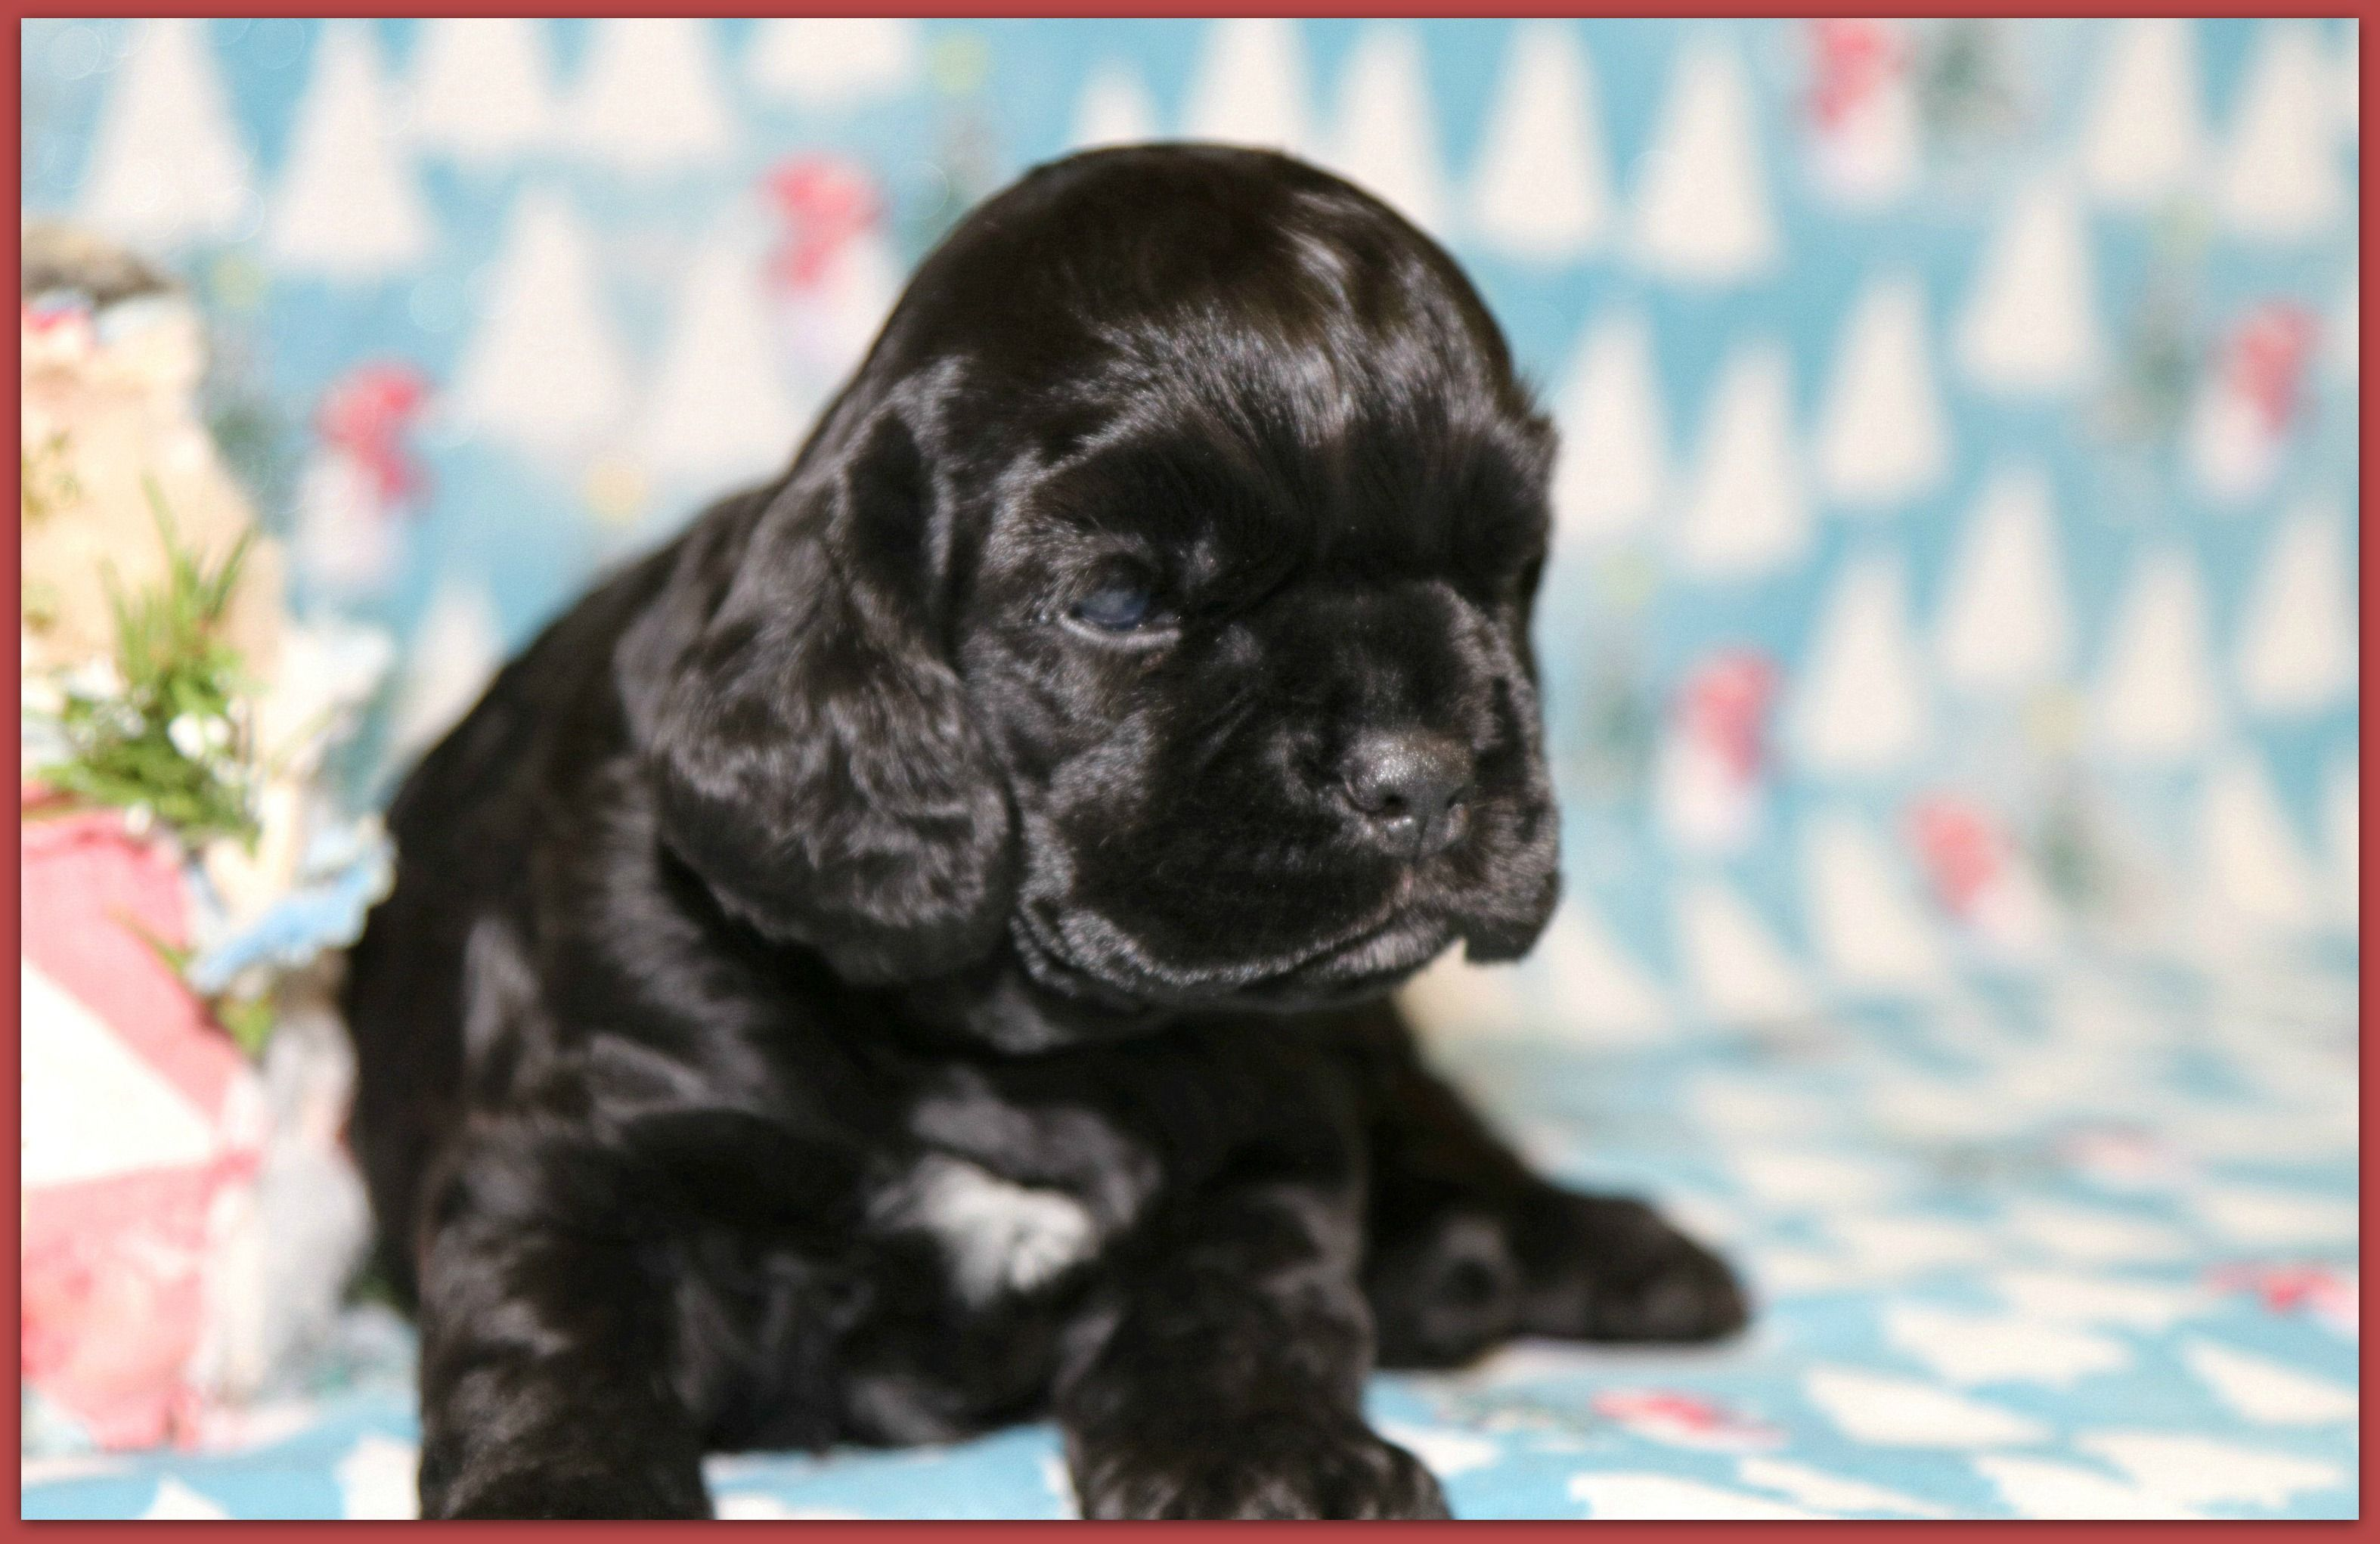 Caedence 3 Week Old Black Cocker Spaniel Puppy Having Some